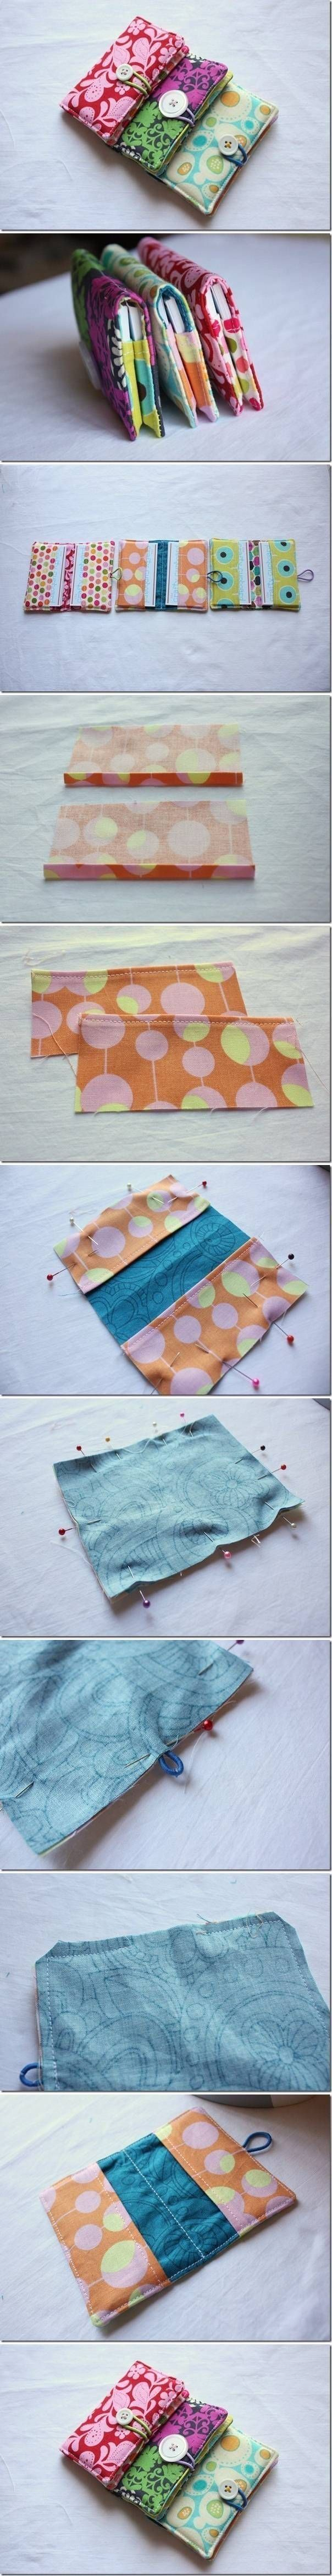 DIY Sew Business Card Holder Pictures, Photos, and Images for Facebook, Tumblr, Pinterest, and Twitter